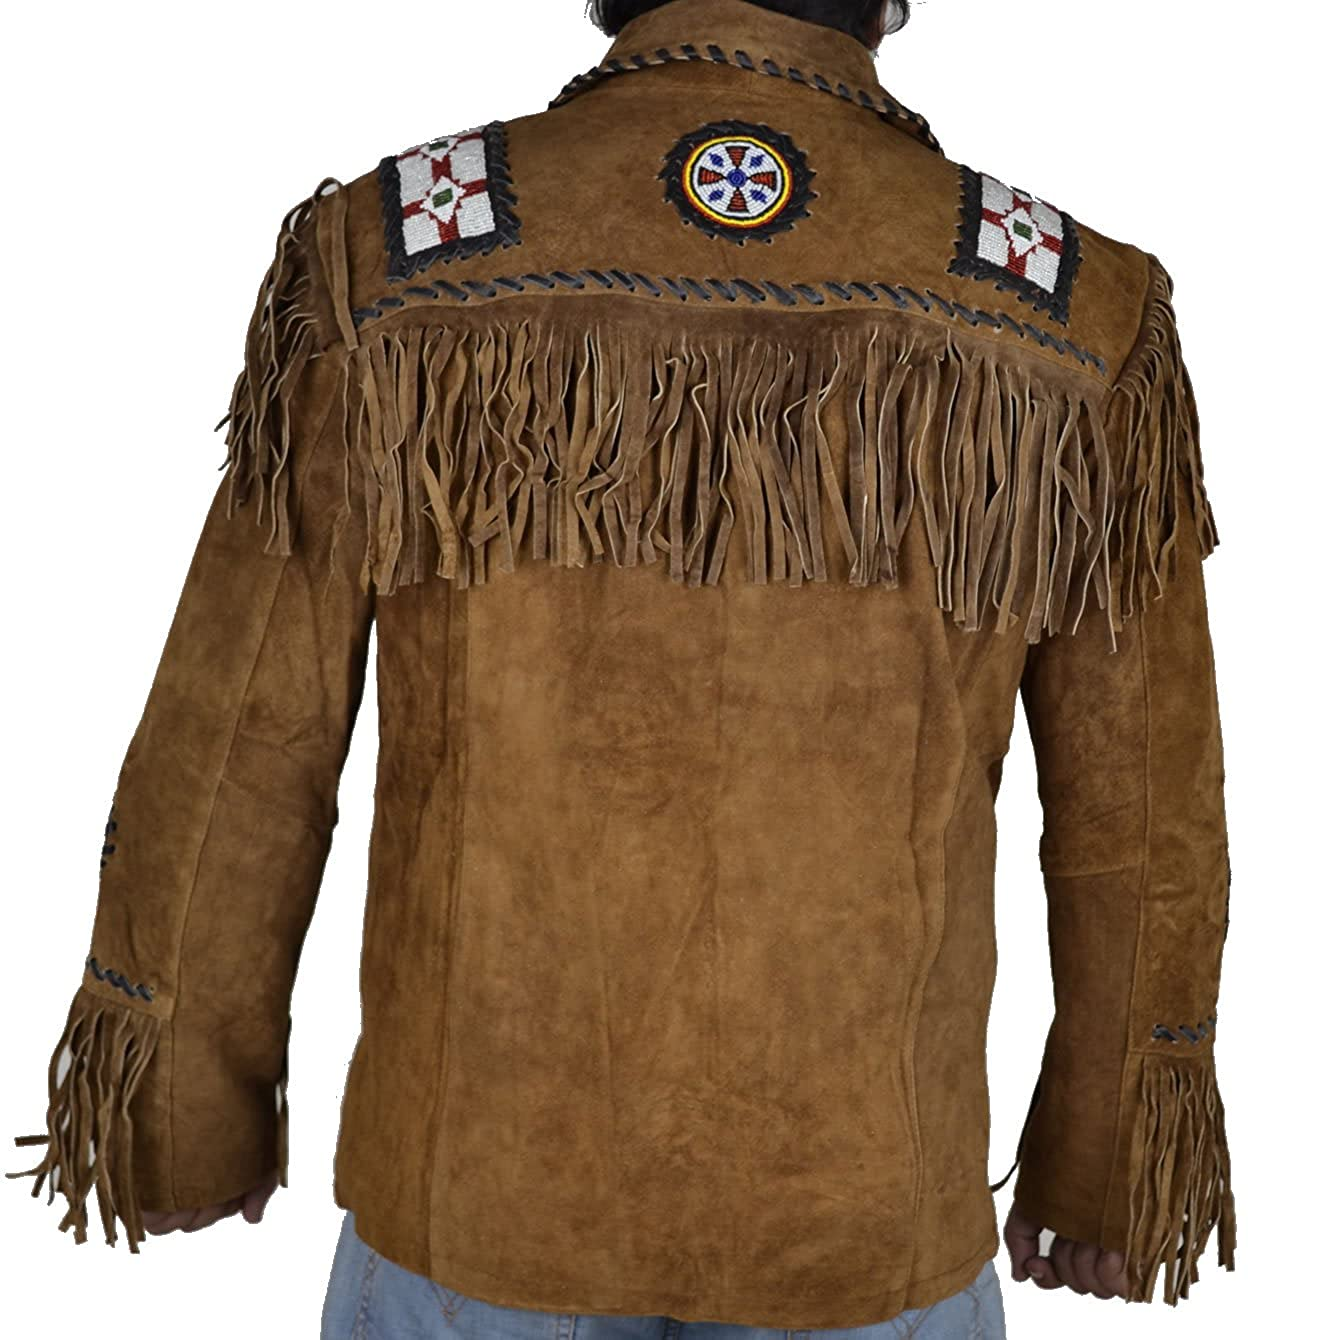 Sleekhides Mens Western Cowboy Suede Leather Jacket Fringed & Beaded at Amazon Mens Clothing store: